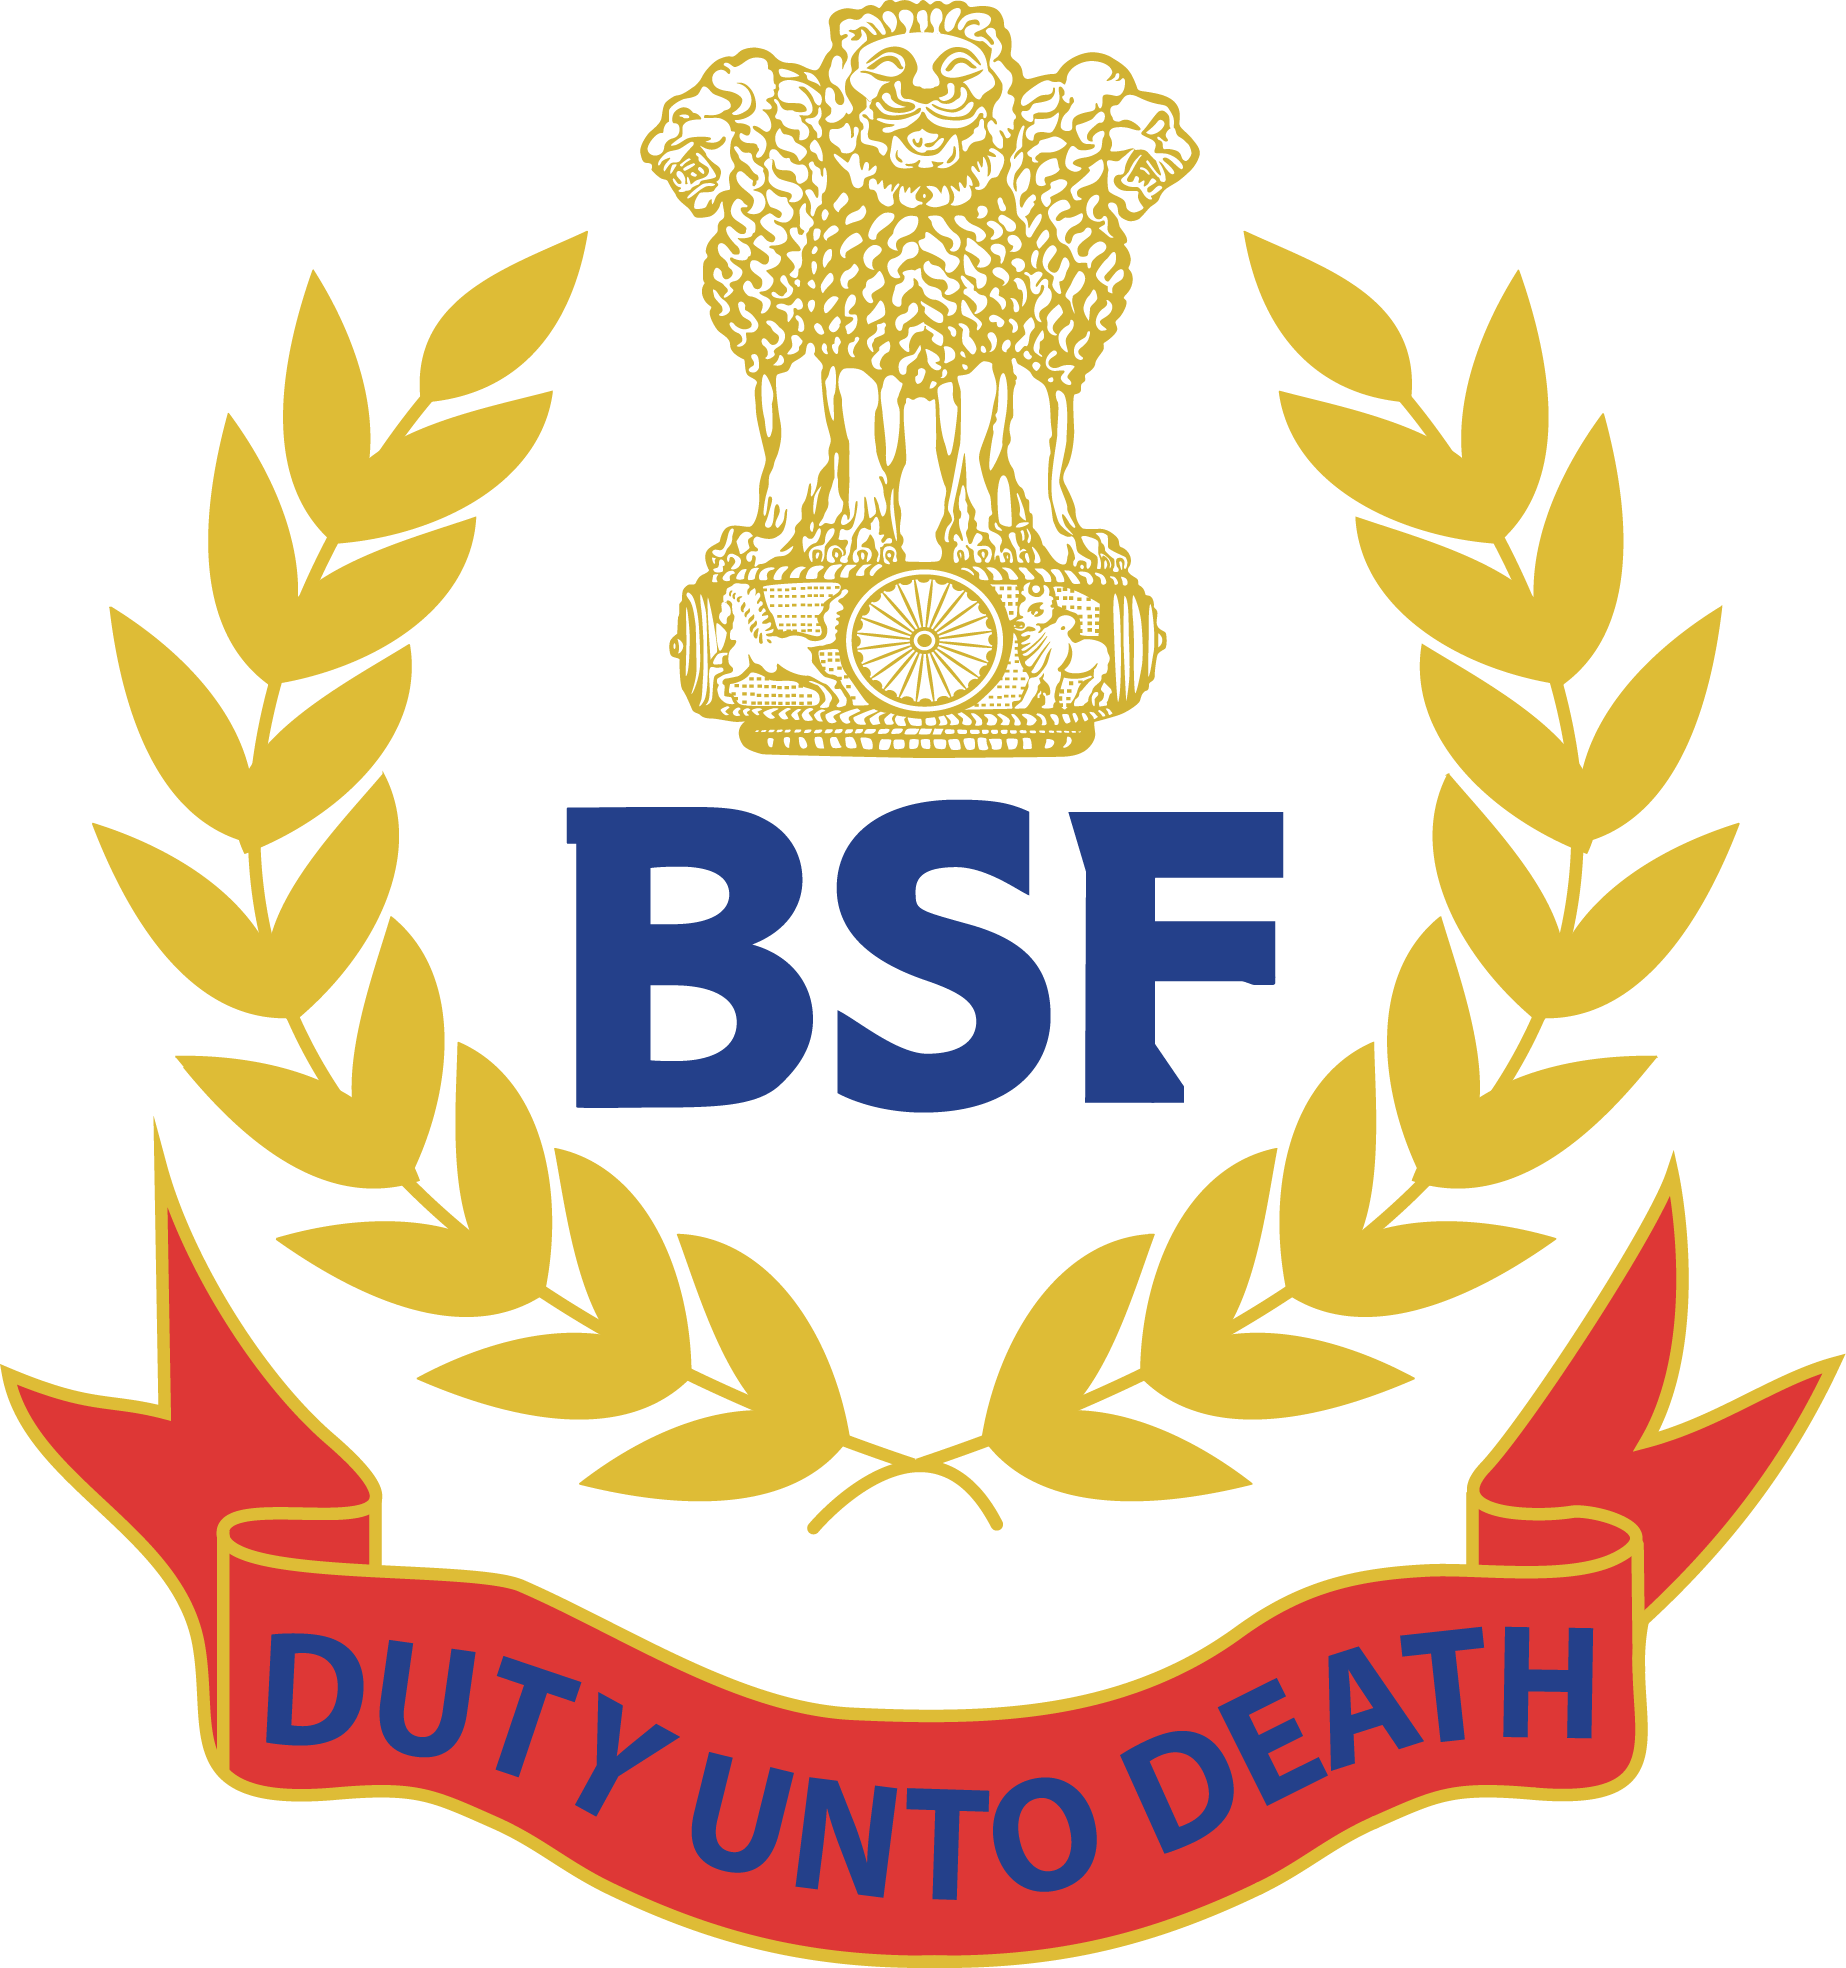 BSF Logo (Border Security Force) png